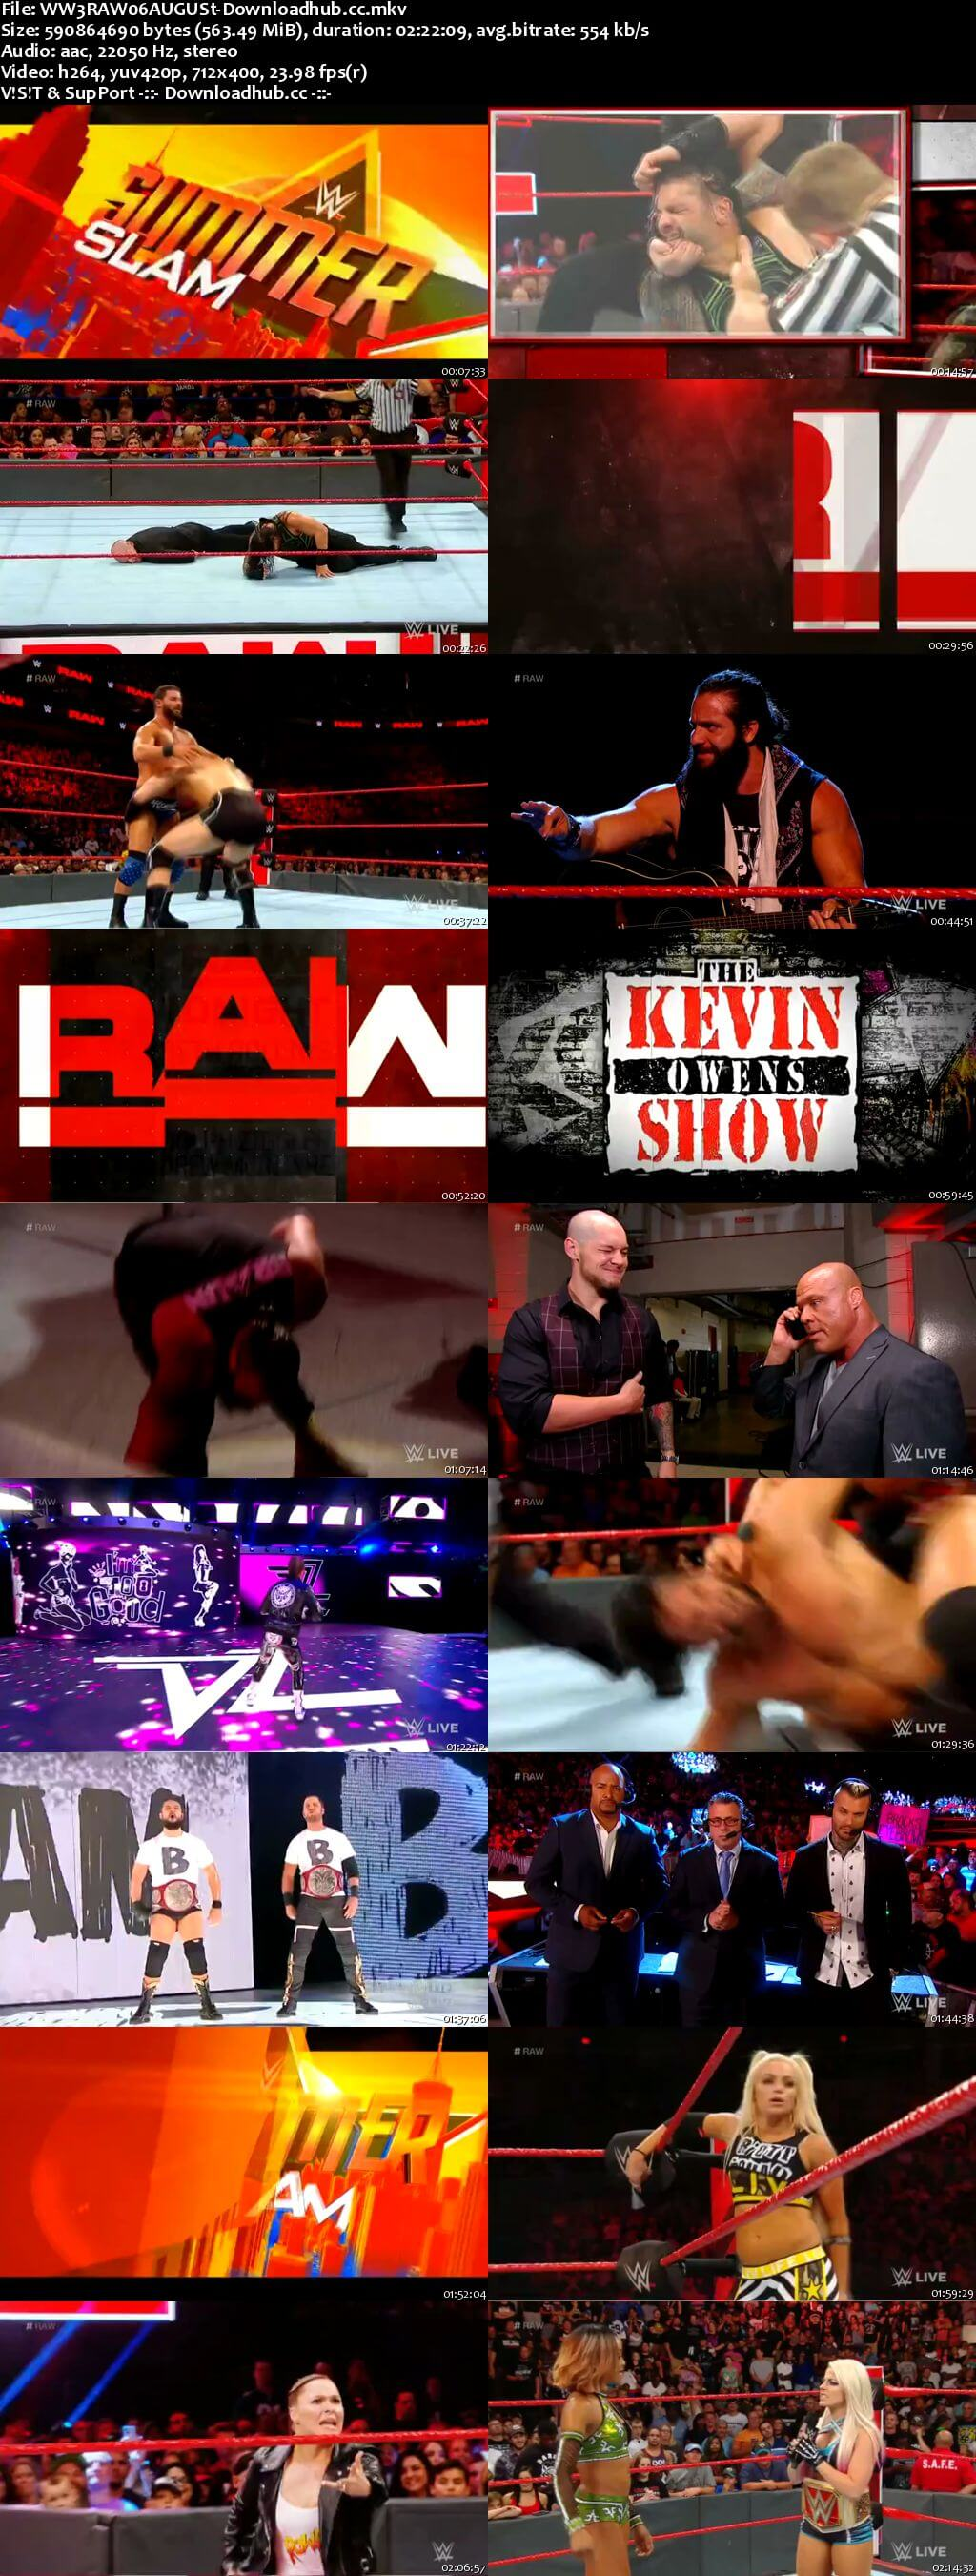 Wwe monday night raw 06 august 2018 480p hdtv download - Monday night raw images ...